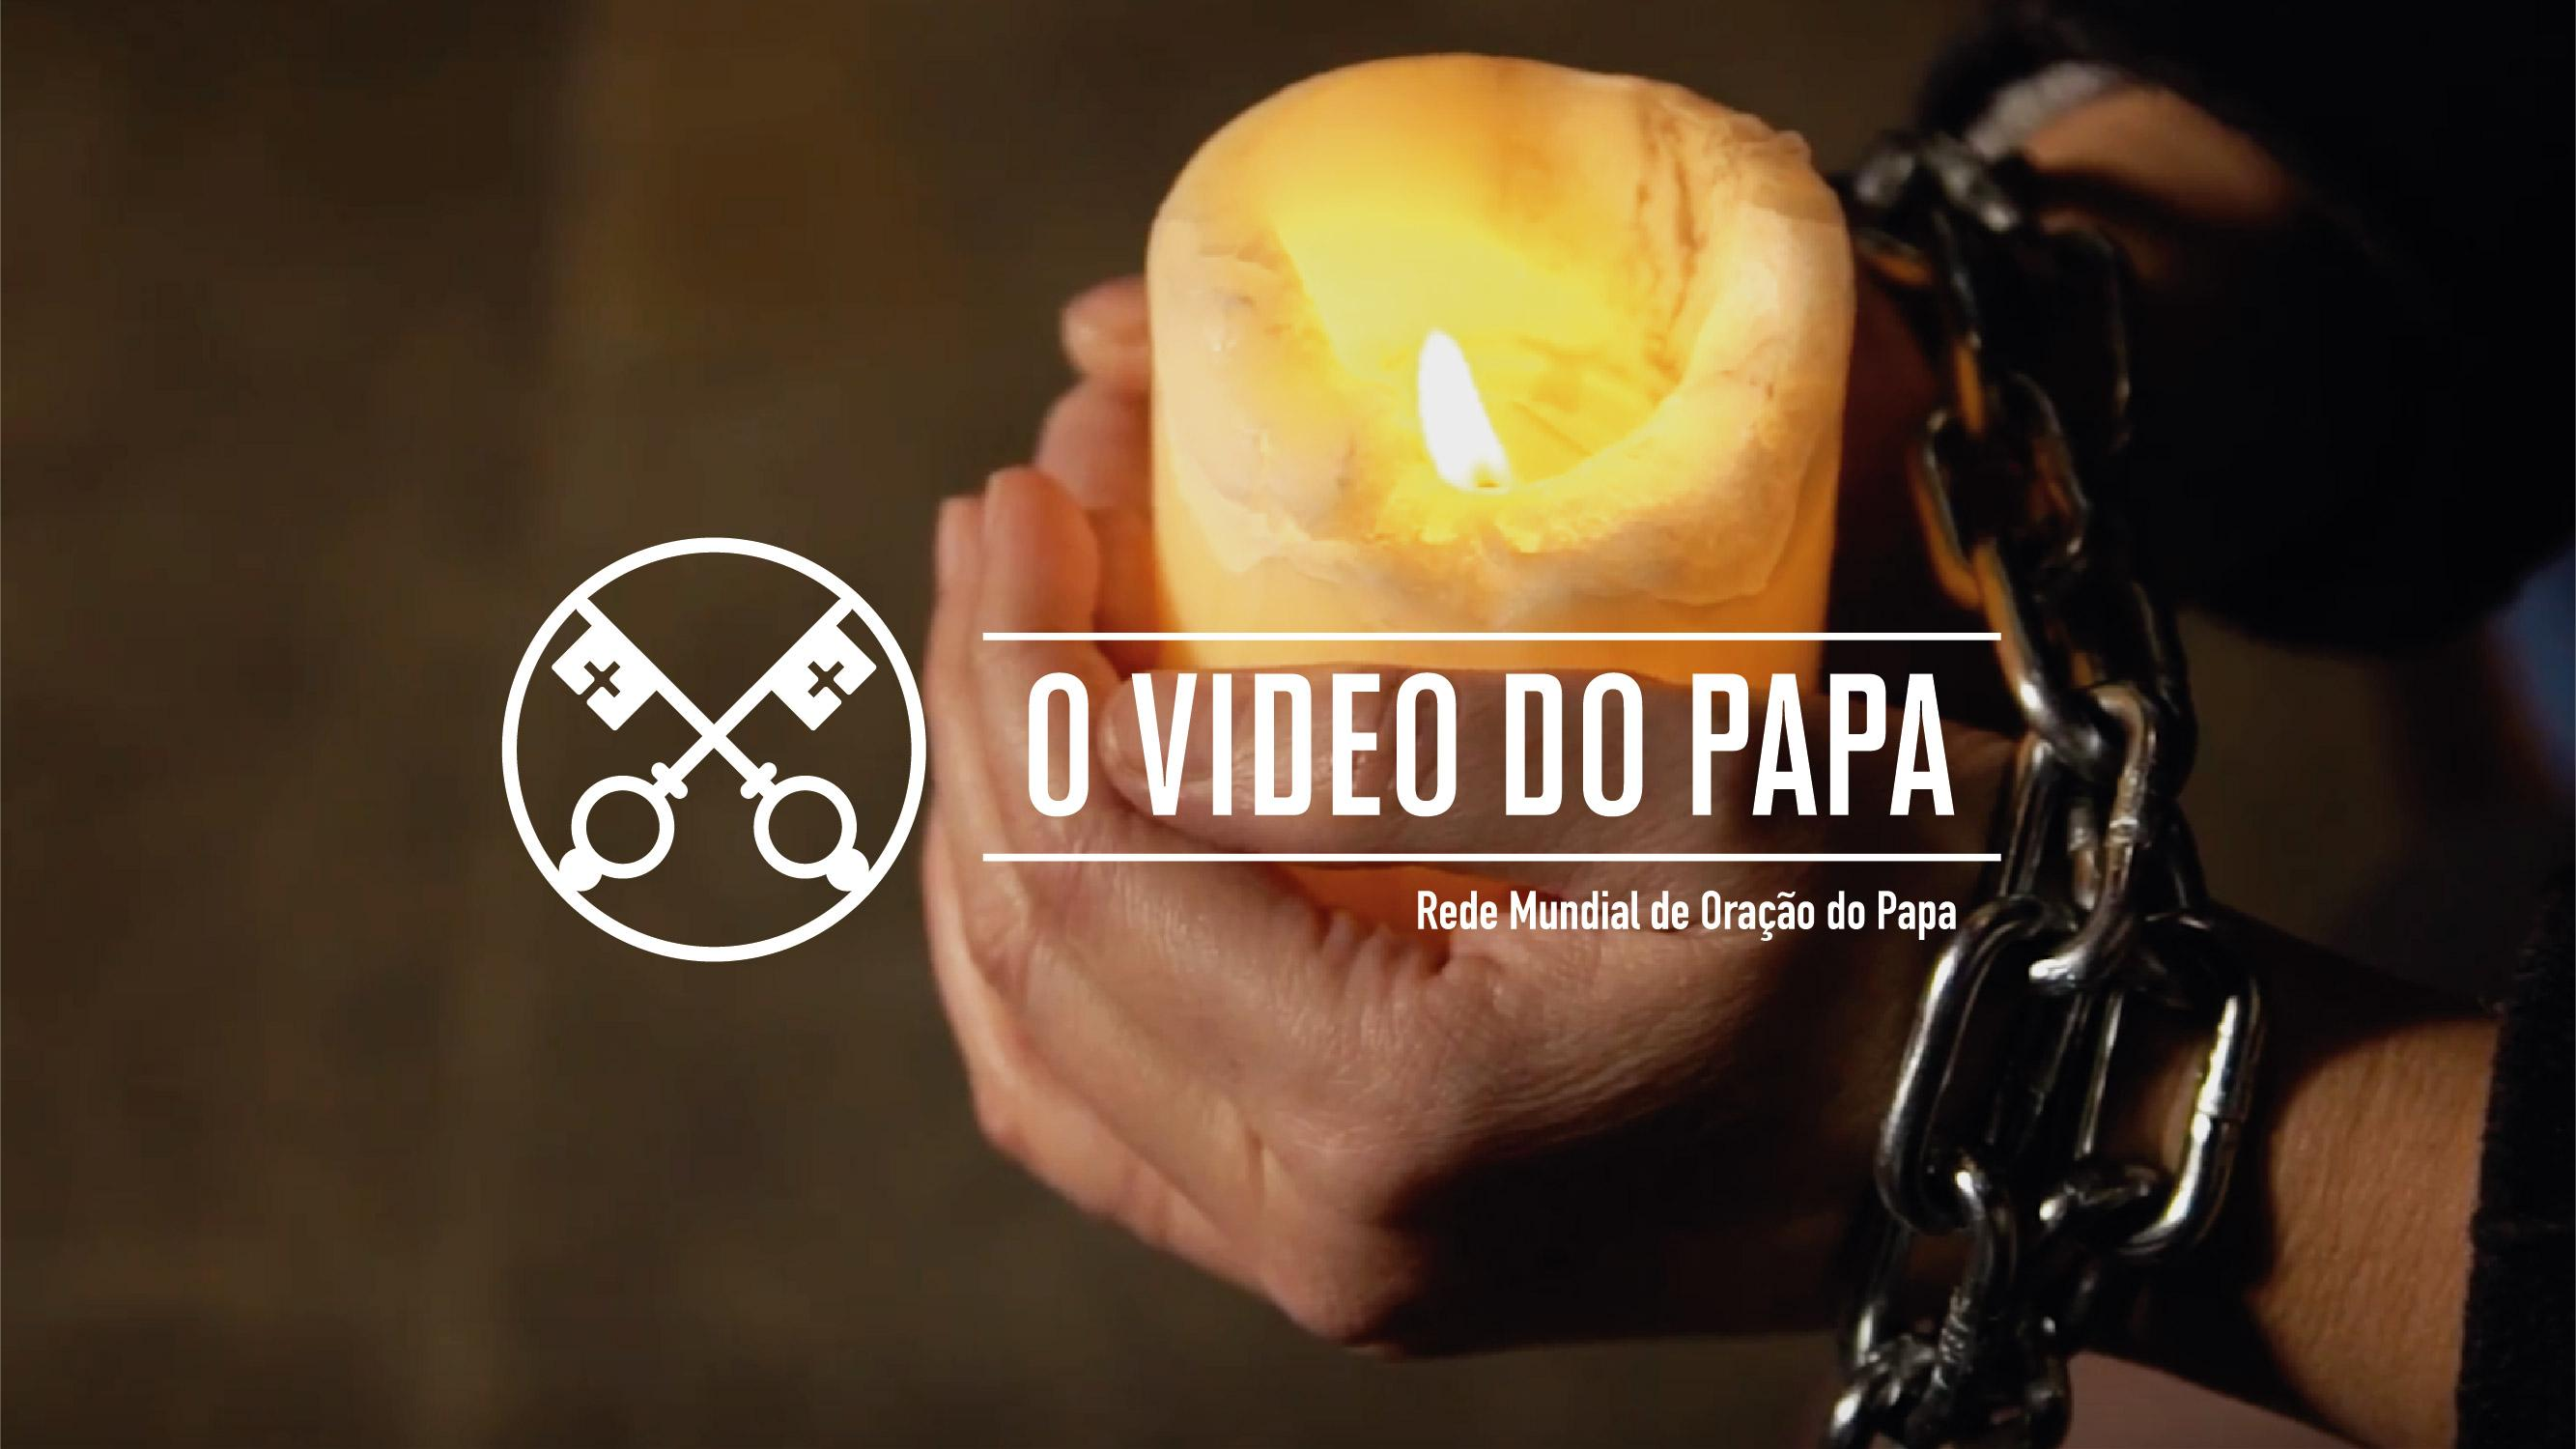 The-Pope-Video-1-2018-Religious-minorities-in-Asia-5-Portuguese